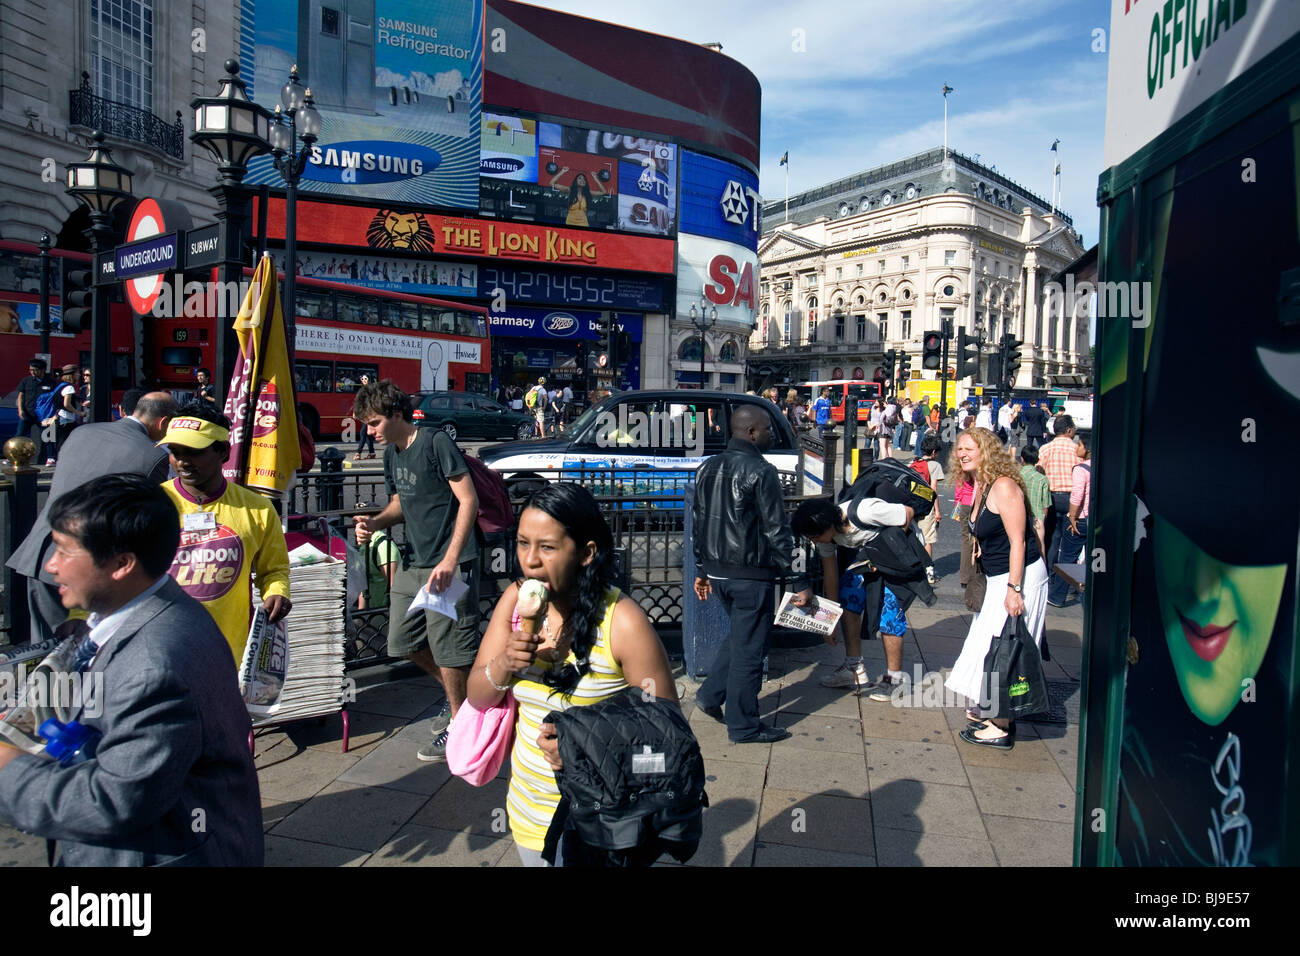 piccadilly circus in london - Stock Image